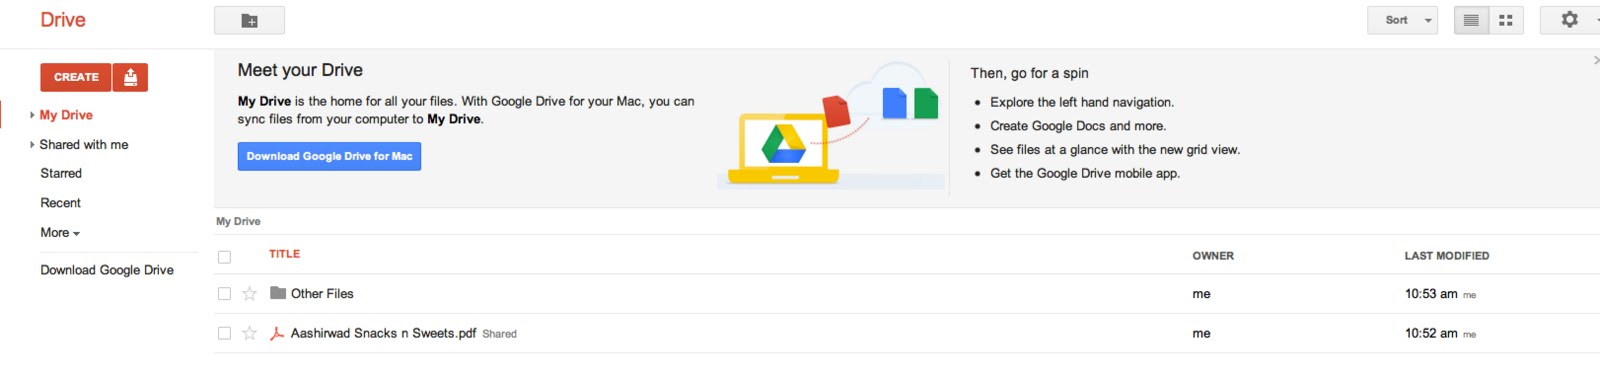 how to change privacy settings in google docs